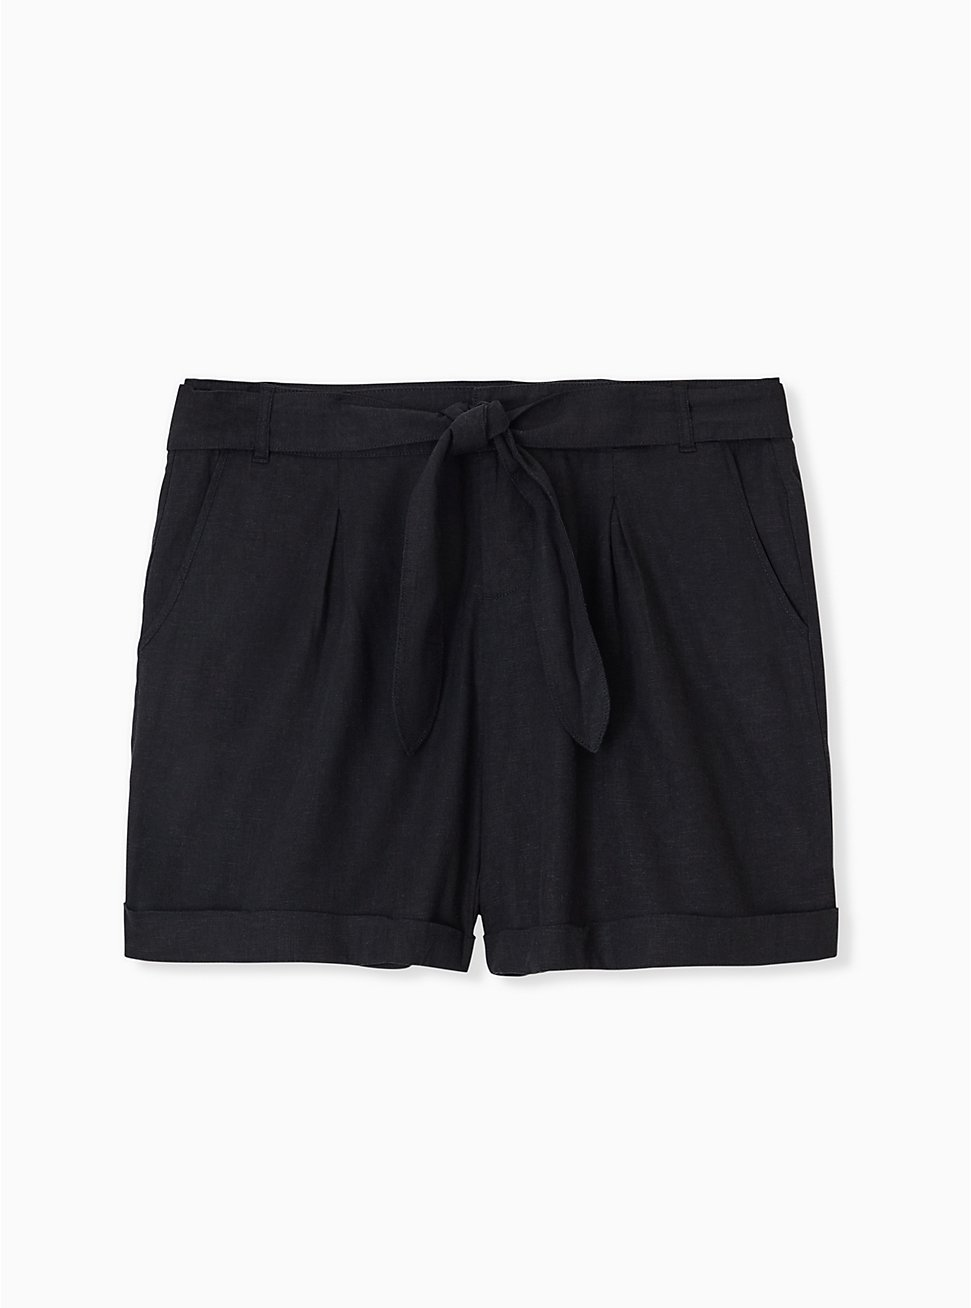 Self Tie Short Short - Linen Black , DEEP BLACK, hi-res